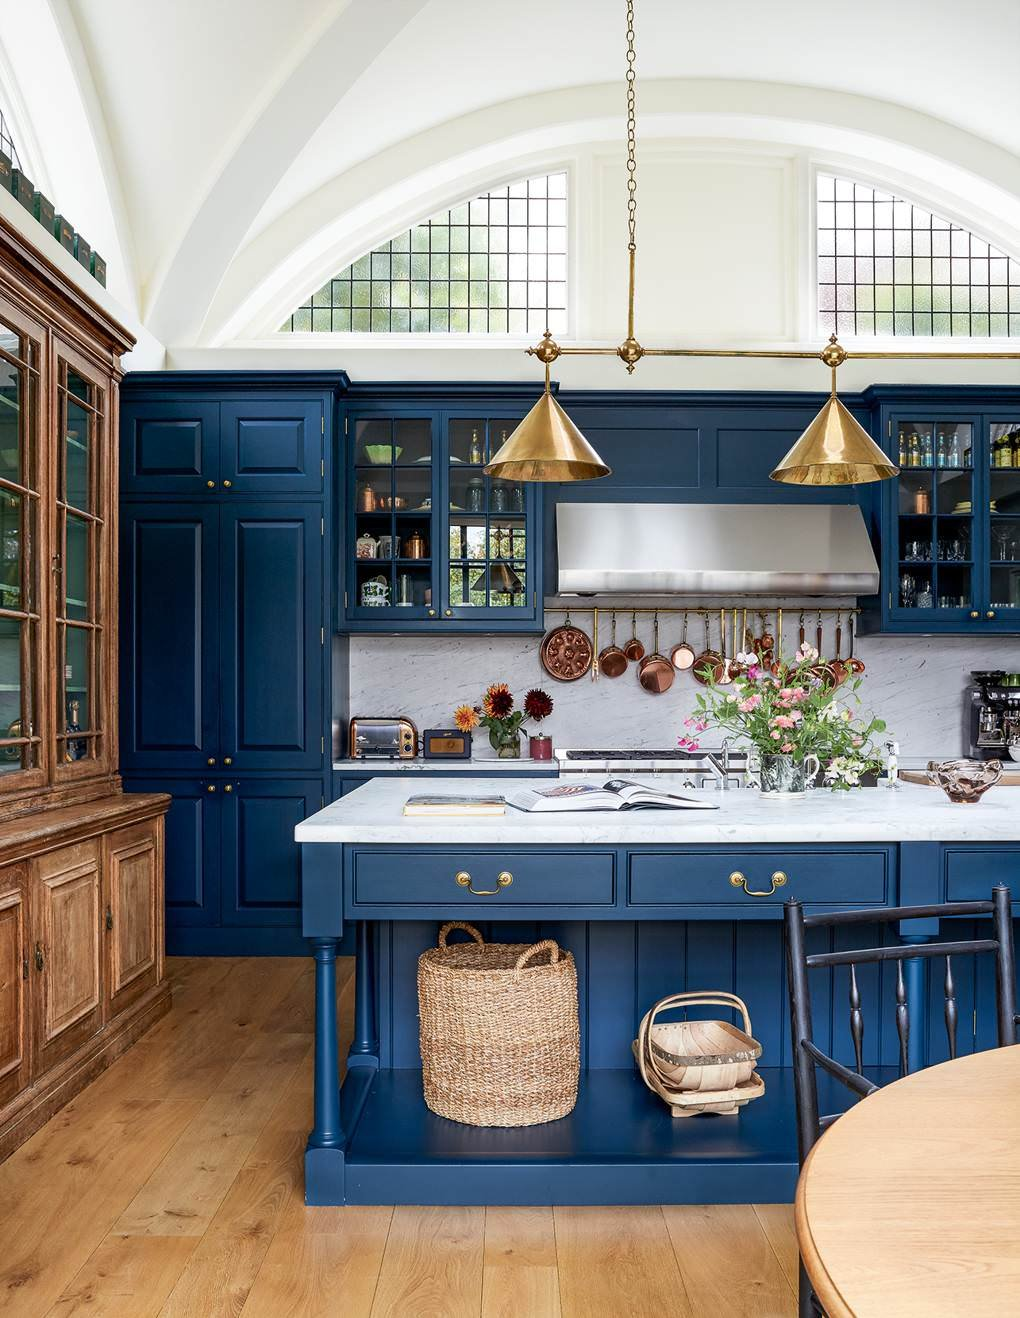 Blue Painted Kitchen in North London Home